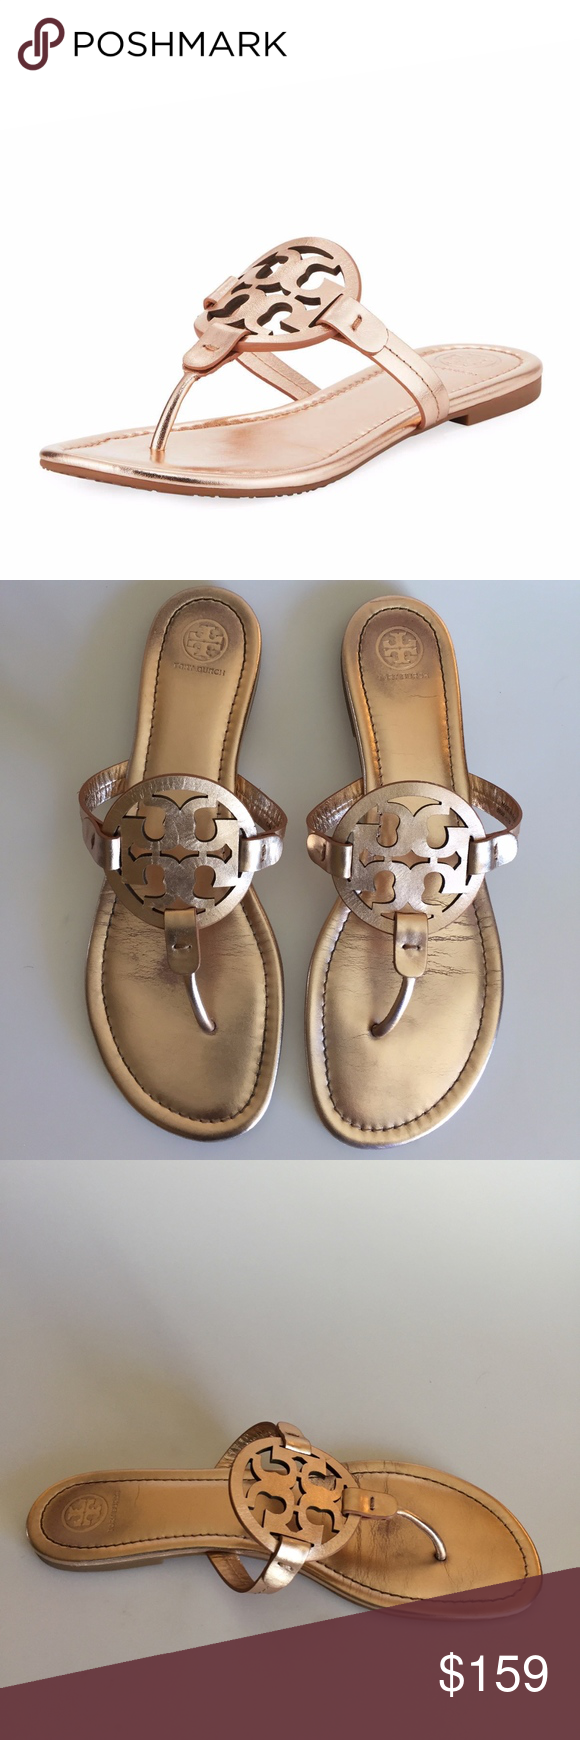 255661181b1b4d Tory Burch Miller Medallion Metallic Leather Flat   In Good conditions